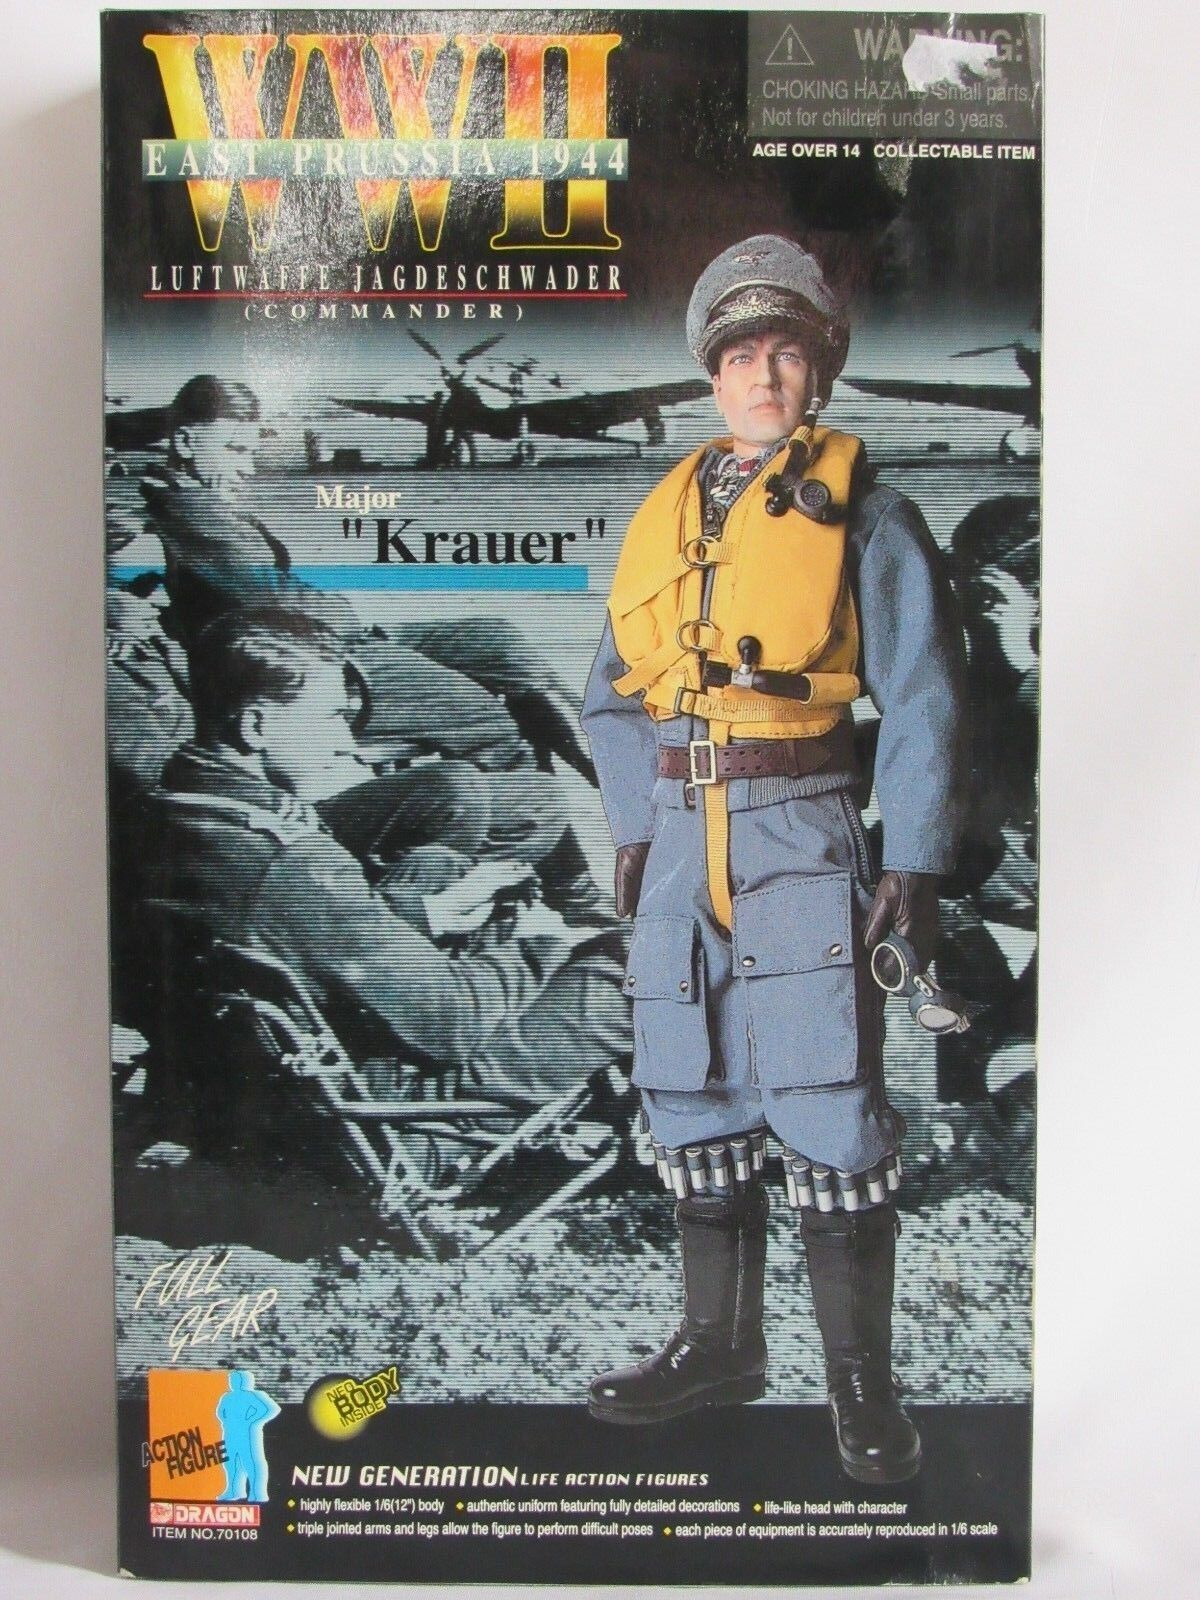 04E2 DRAGON ACTION FIGURE MAJOR KRAUER LUFTWAFFE JAGDESCHWADER COMMANDER WW2